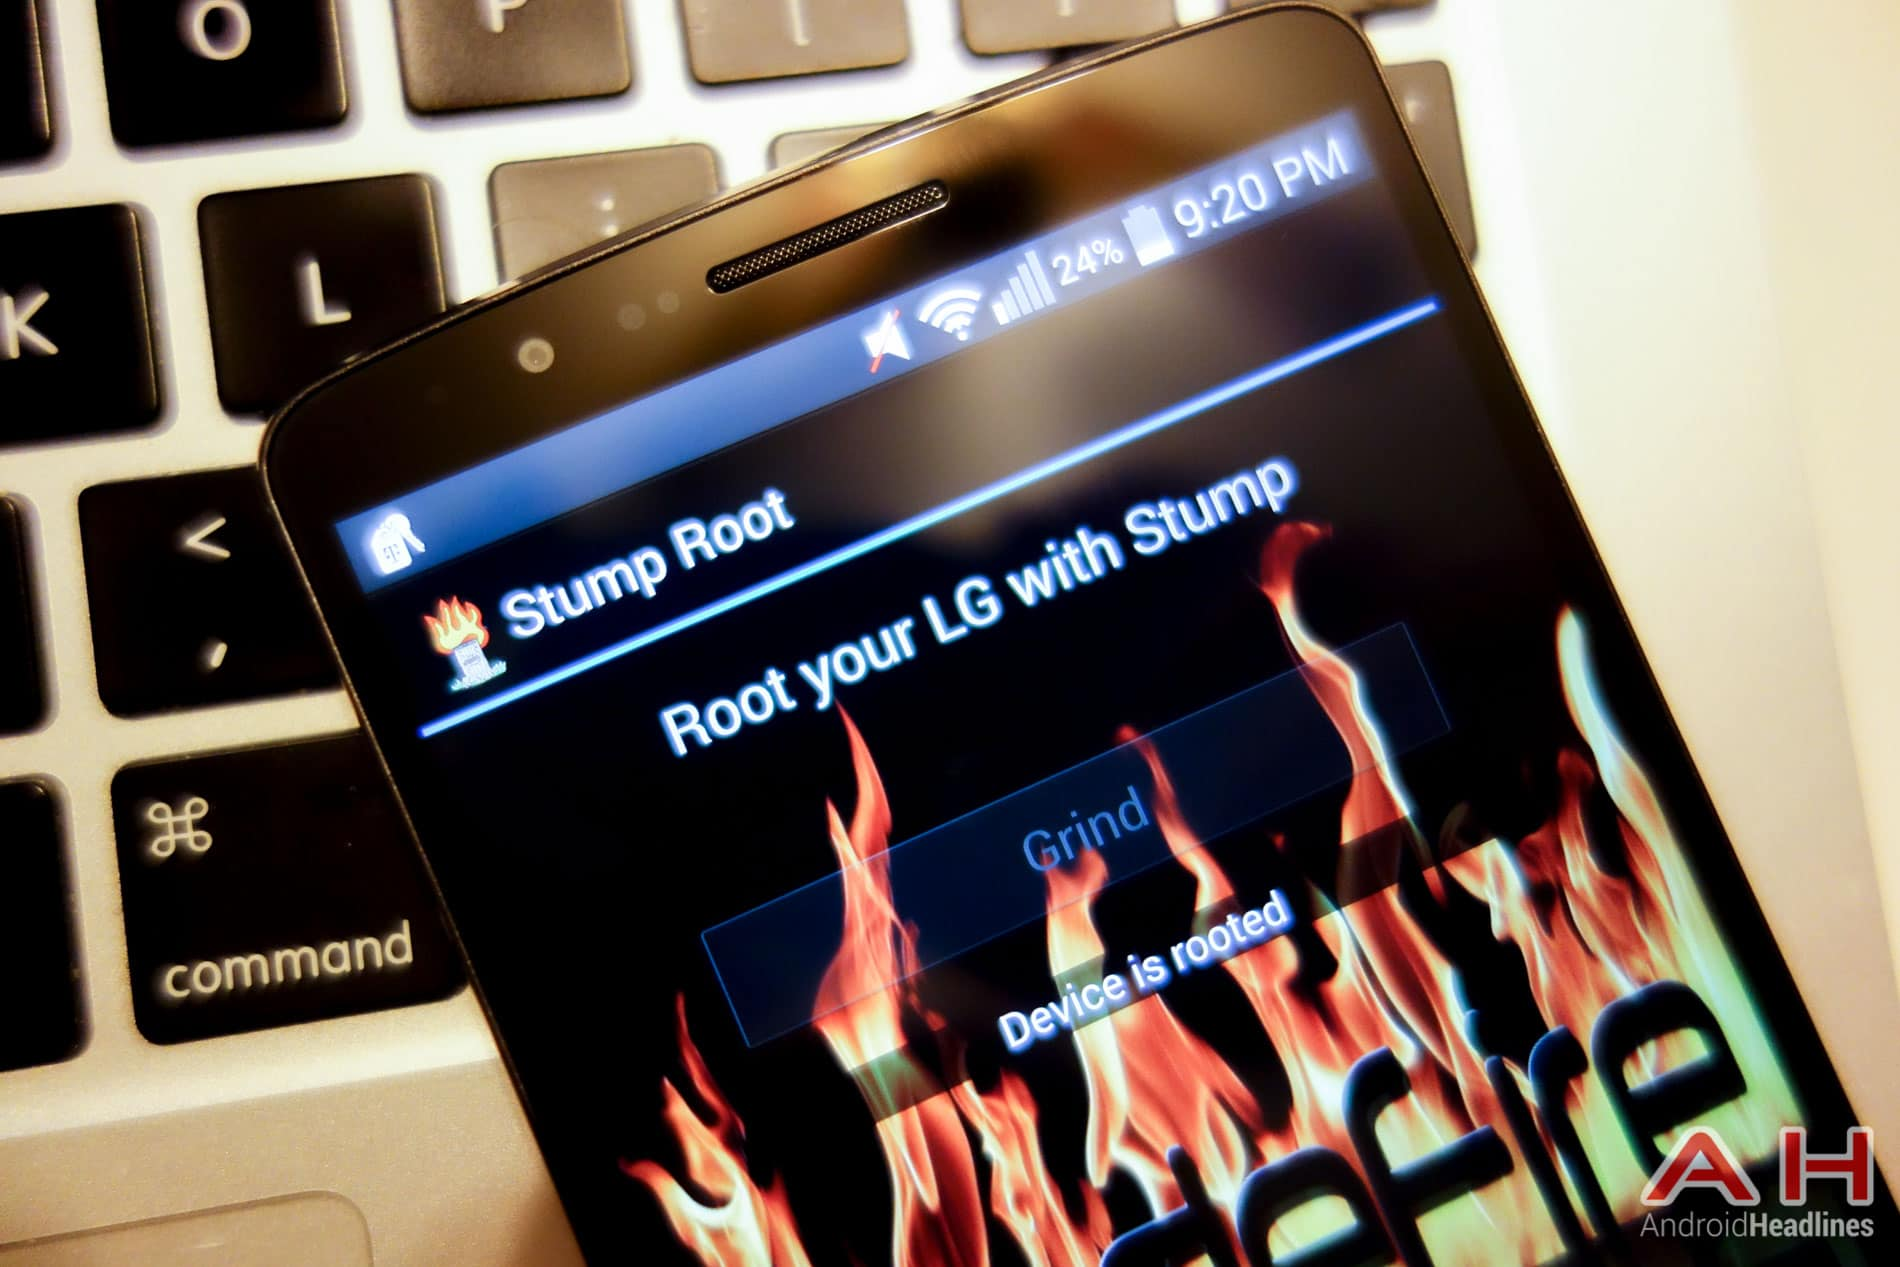 LG-G3-Stump-Root-AH-1